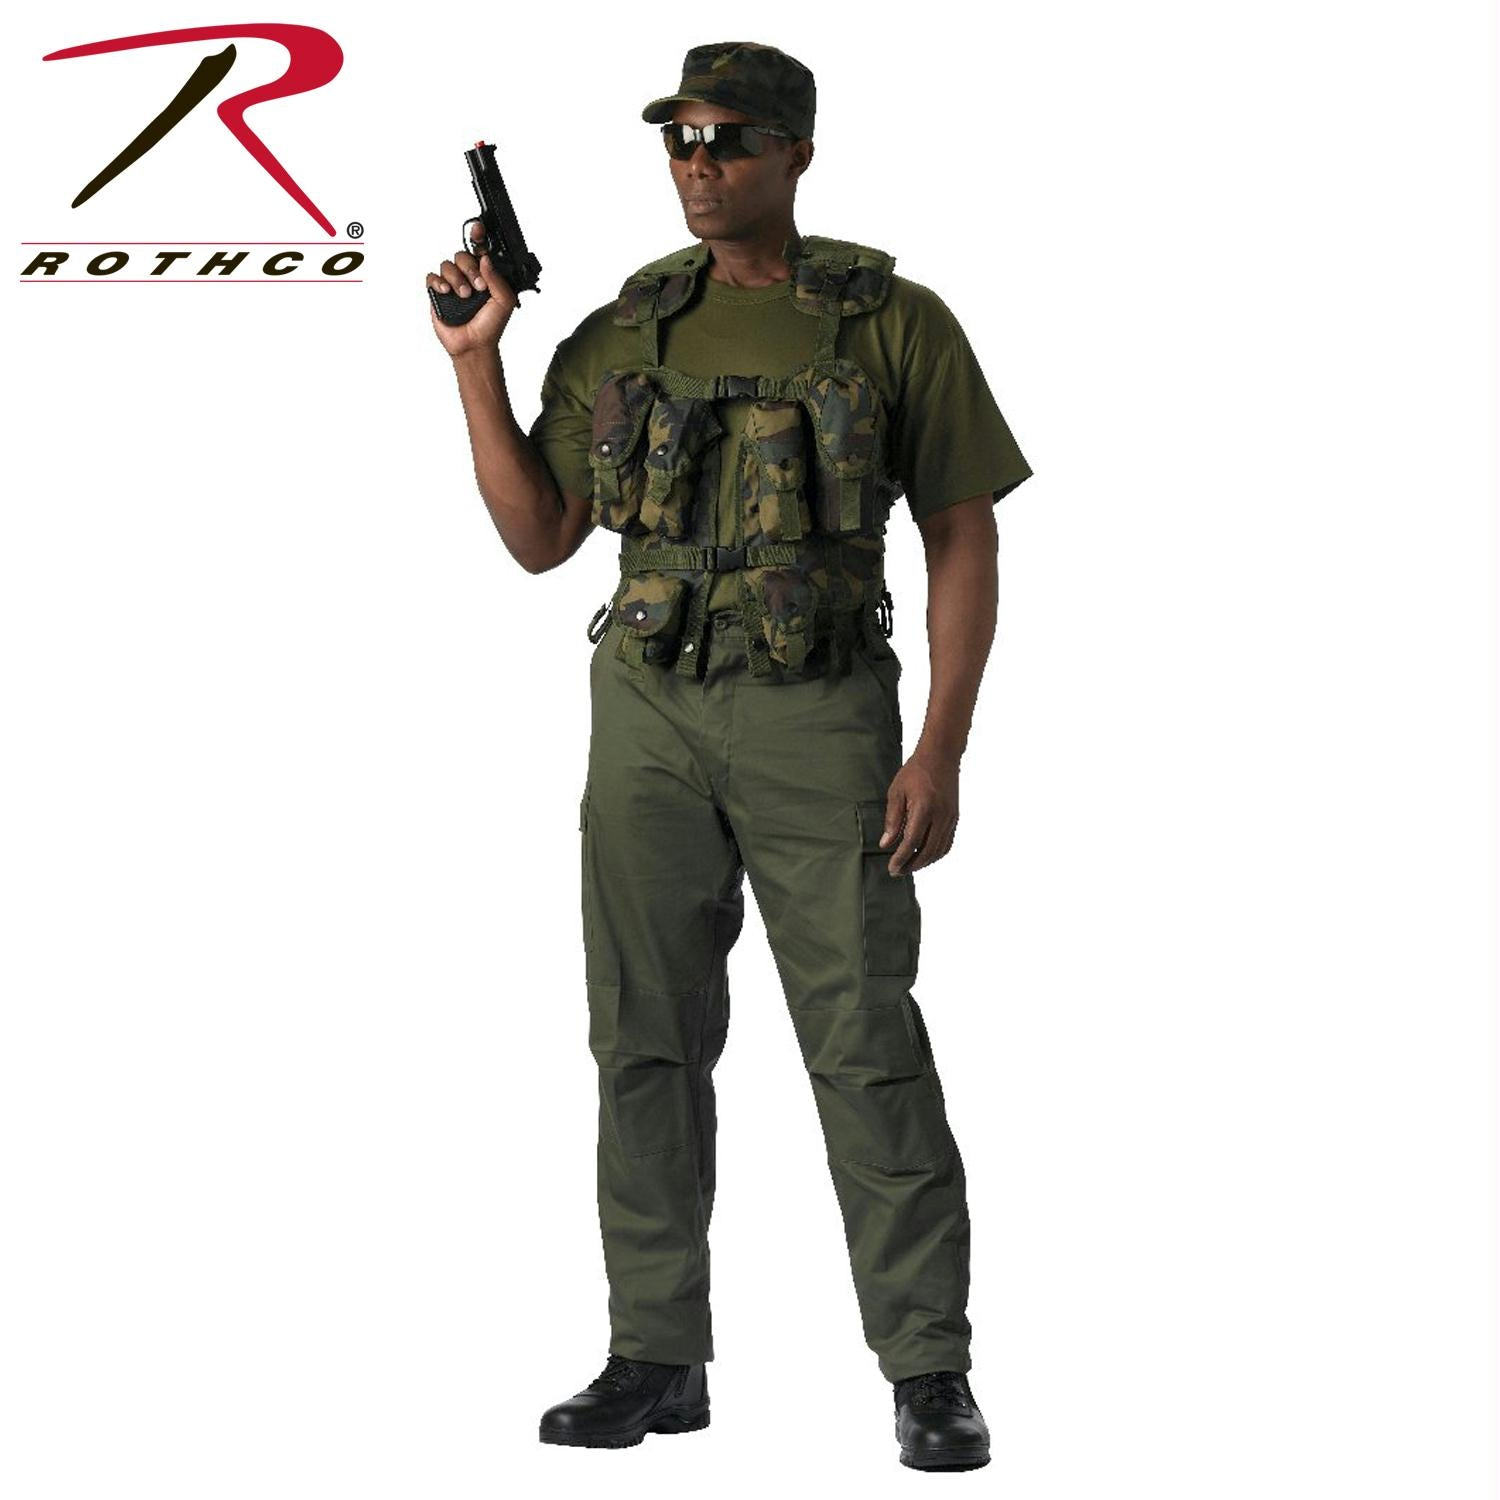 Rothco Tactical Assault Vest